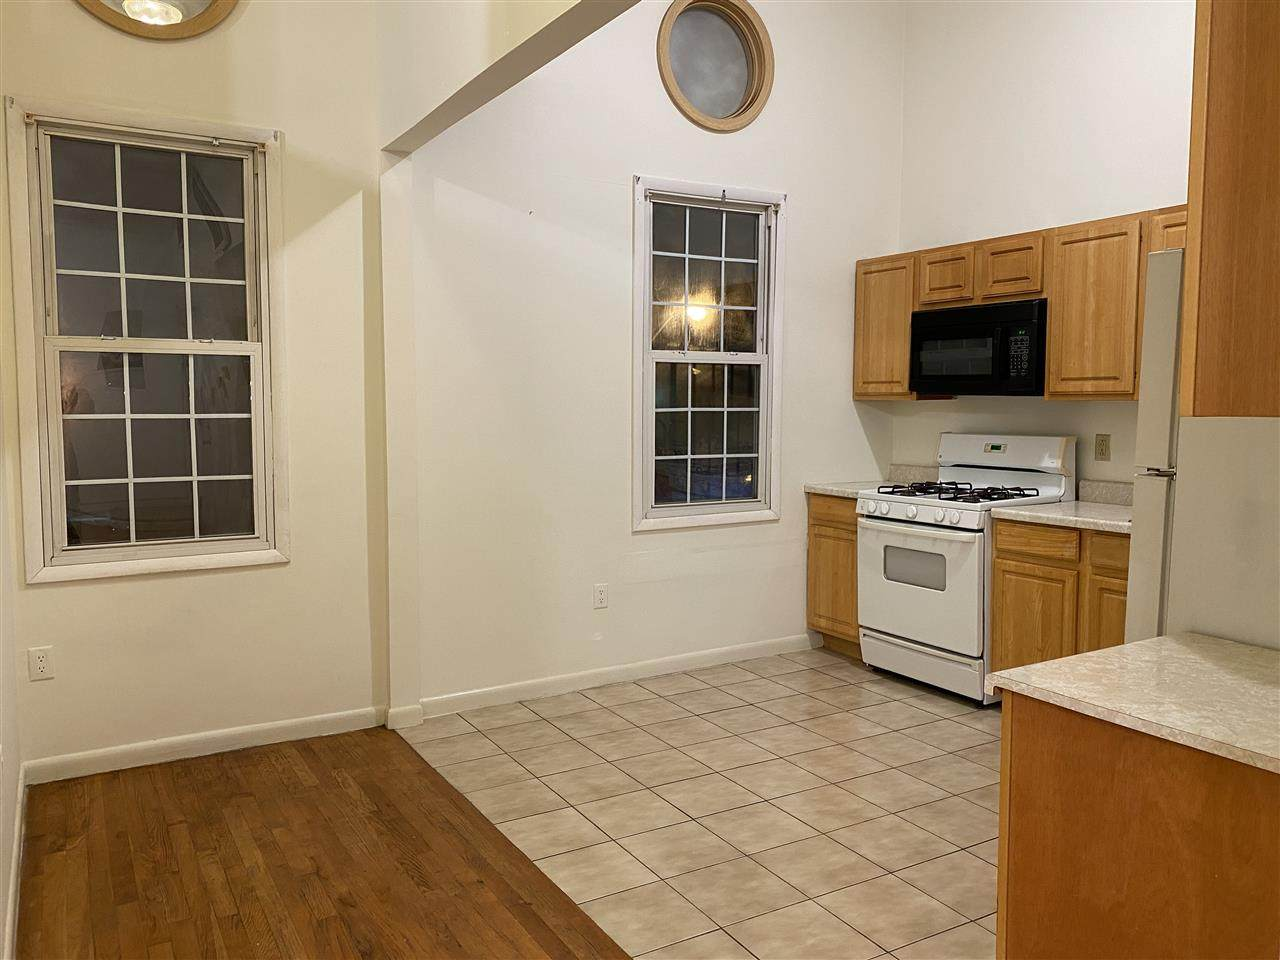 327 Central Ave - Photo 1